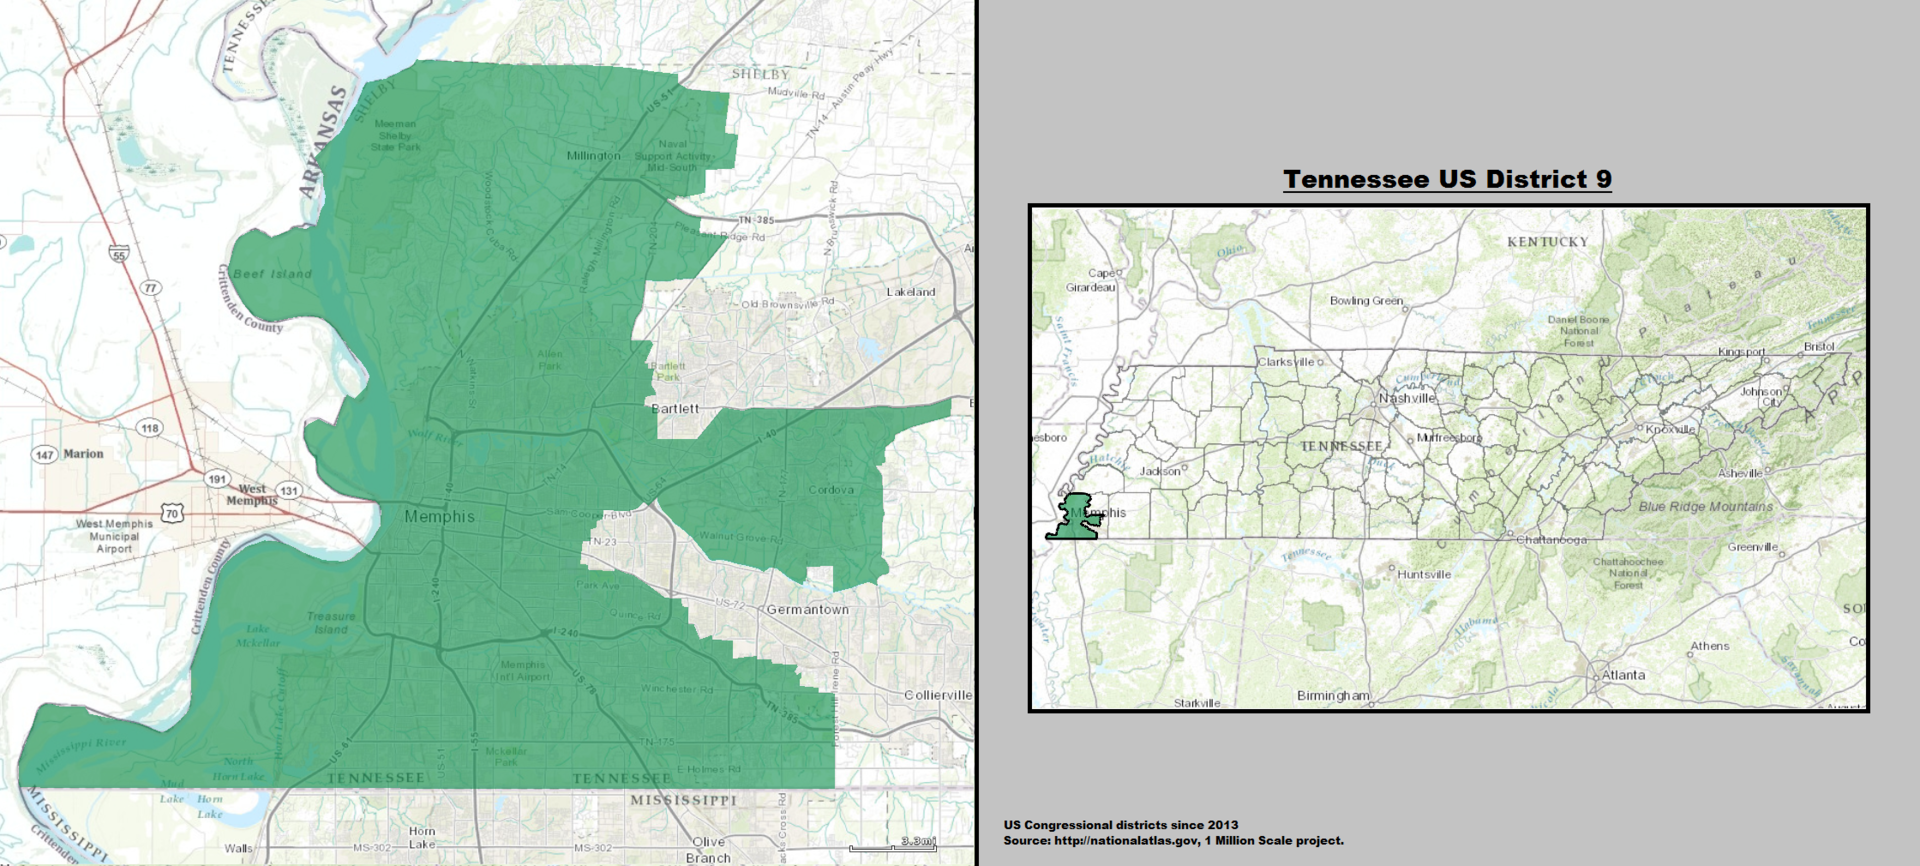 Tennessee39s 9th Congressional District  Wikipedia